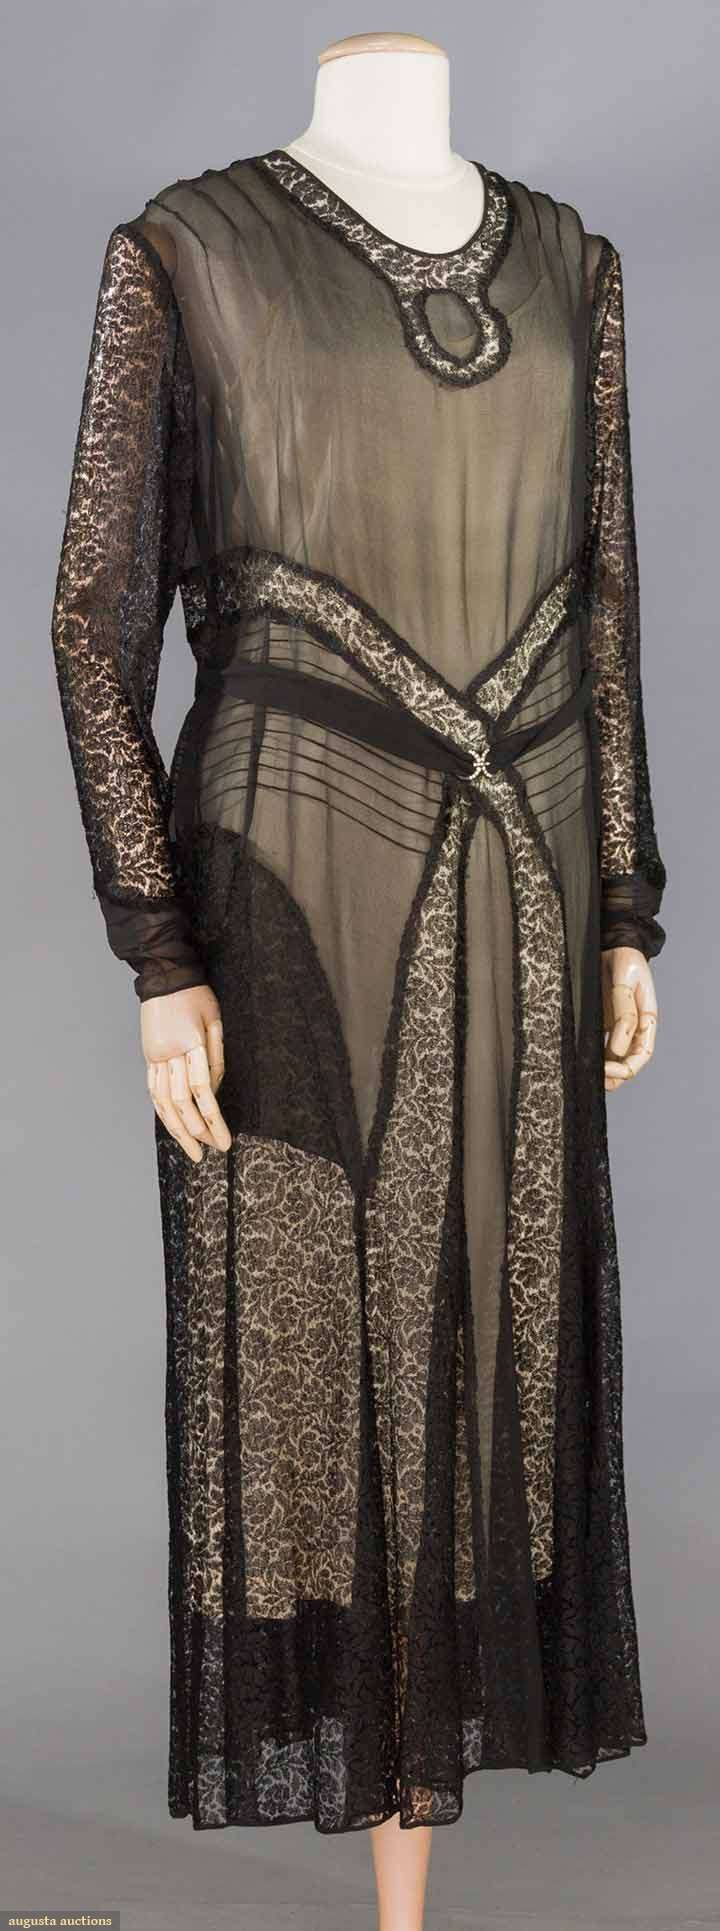 Black lace evening gown lace gown w chiffon inserts long